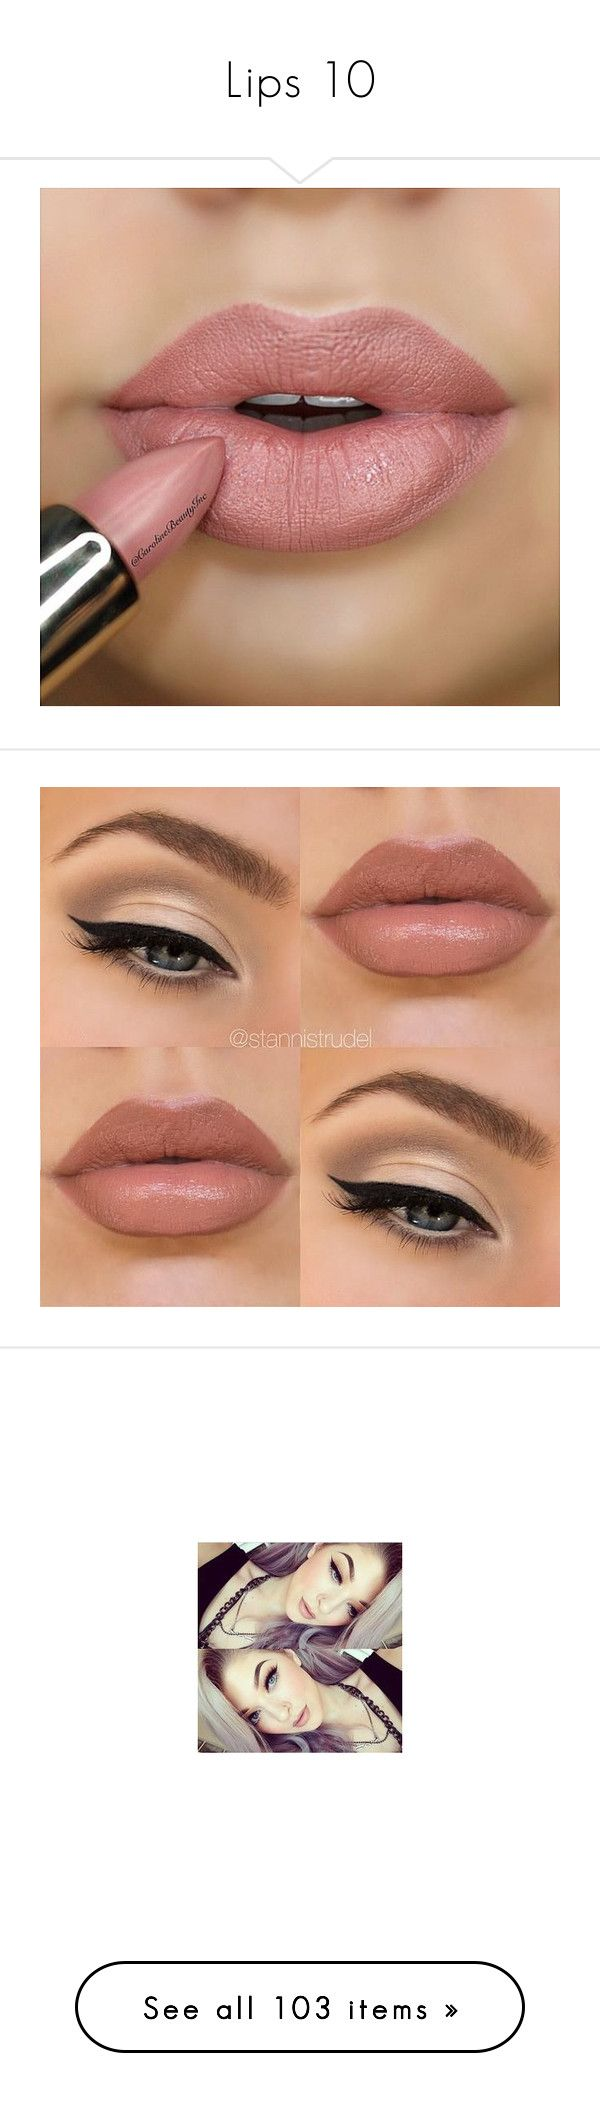 """Lips 10"" by o-hugsandkisses-x ❤ liked on Polyvore featuring beauty products, makeup, lip makeup, lipstick, lips, beauty, nude pink lipstick, pink lipstick, lips makeup and nude lipstick"